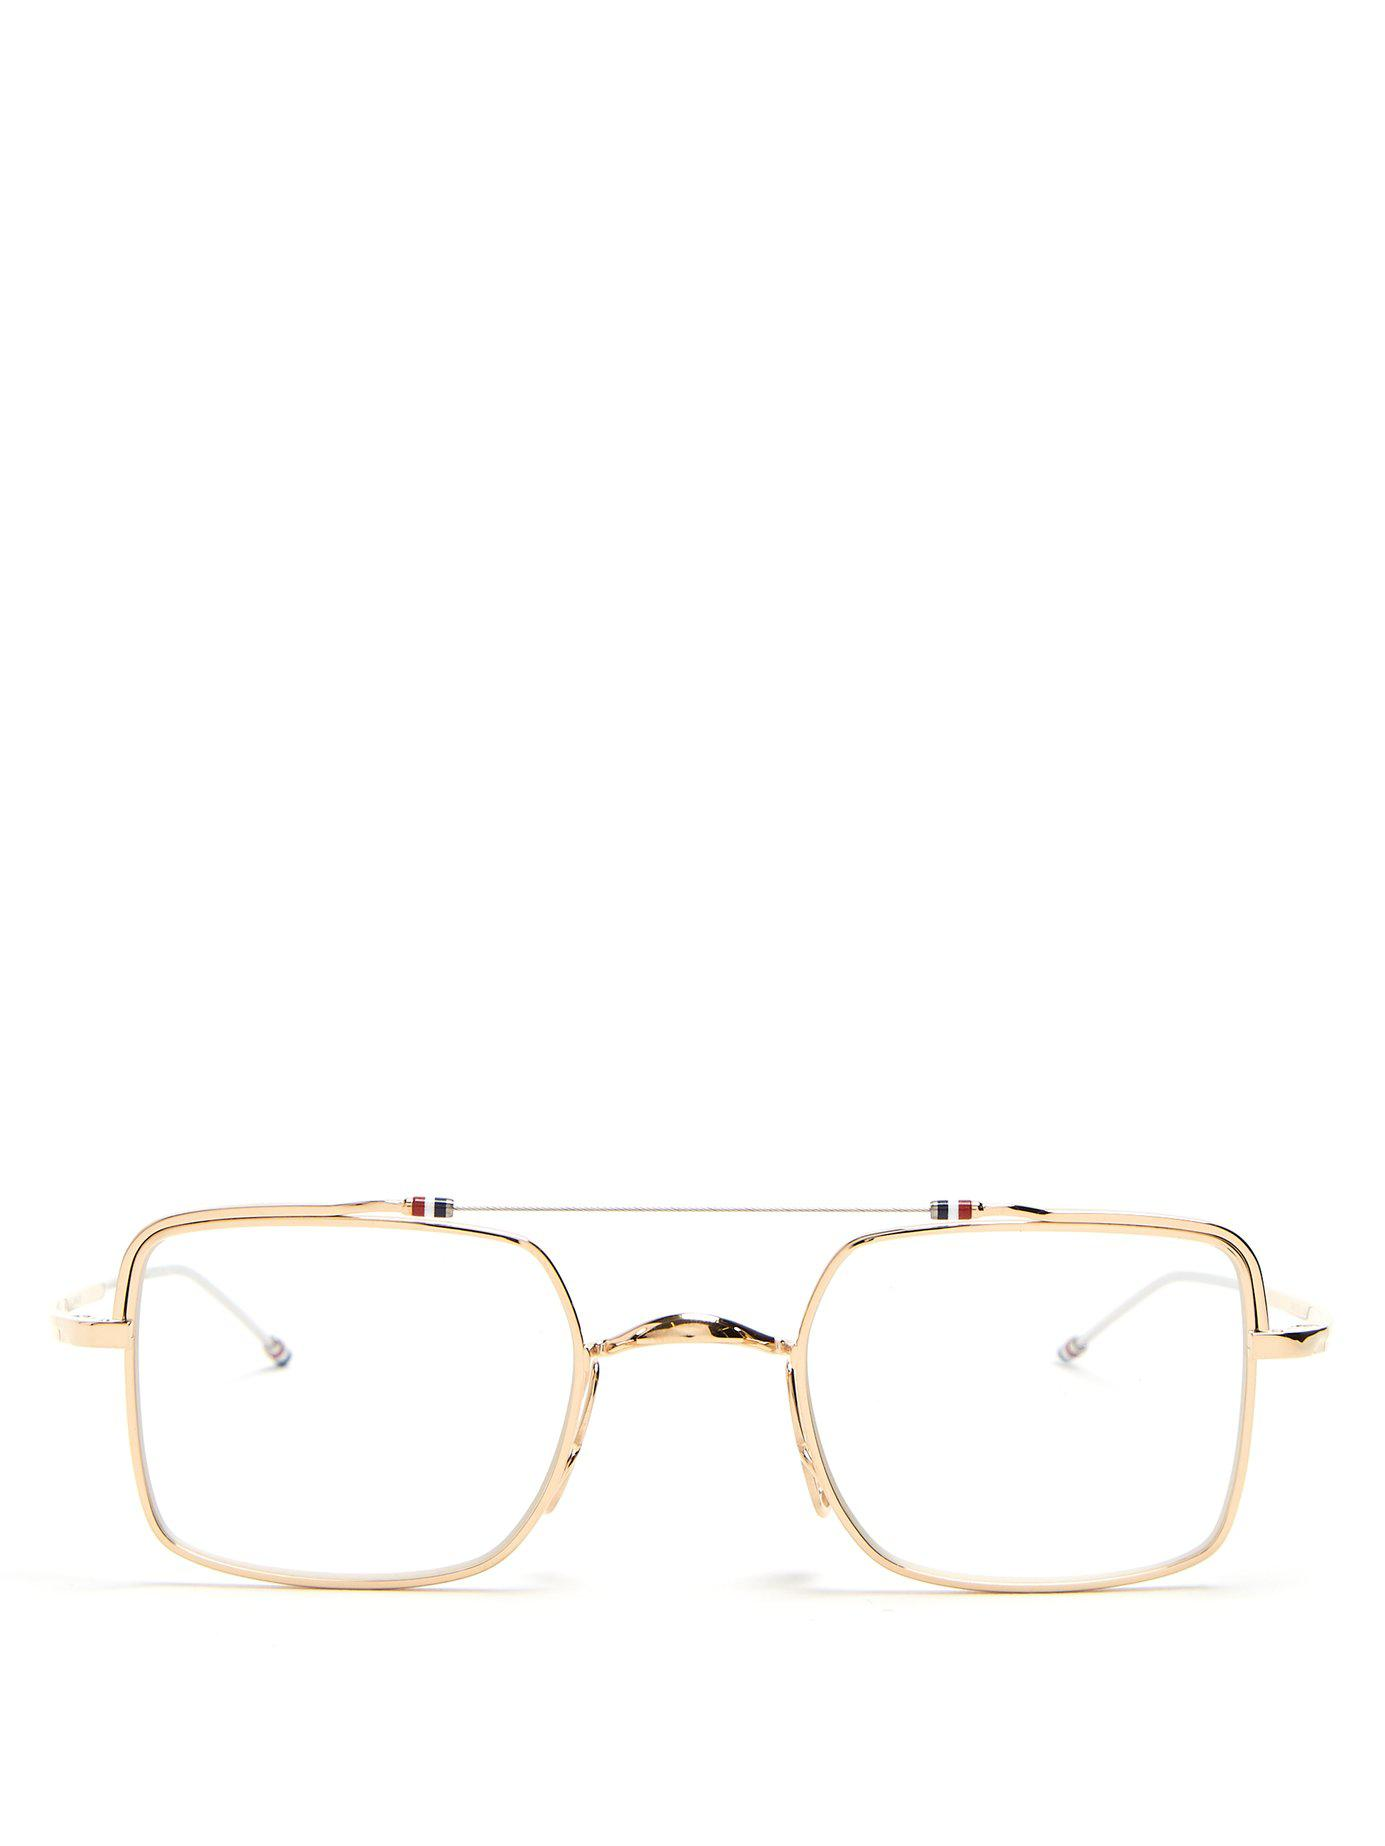 4154ff670834 Lyst - Thom Browne Aviator Frame Glasses in Metallic for Men